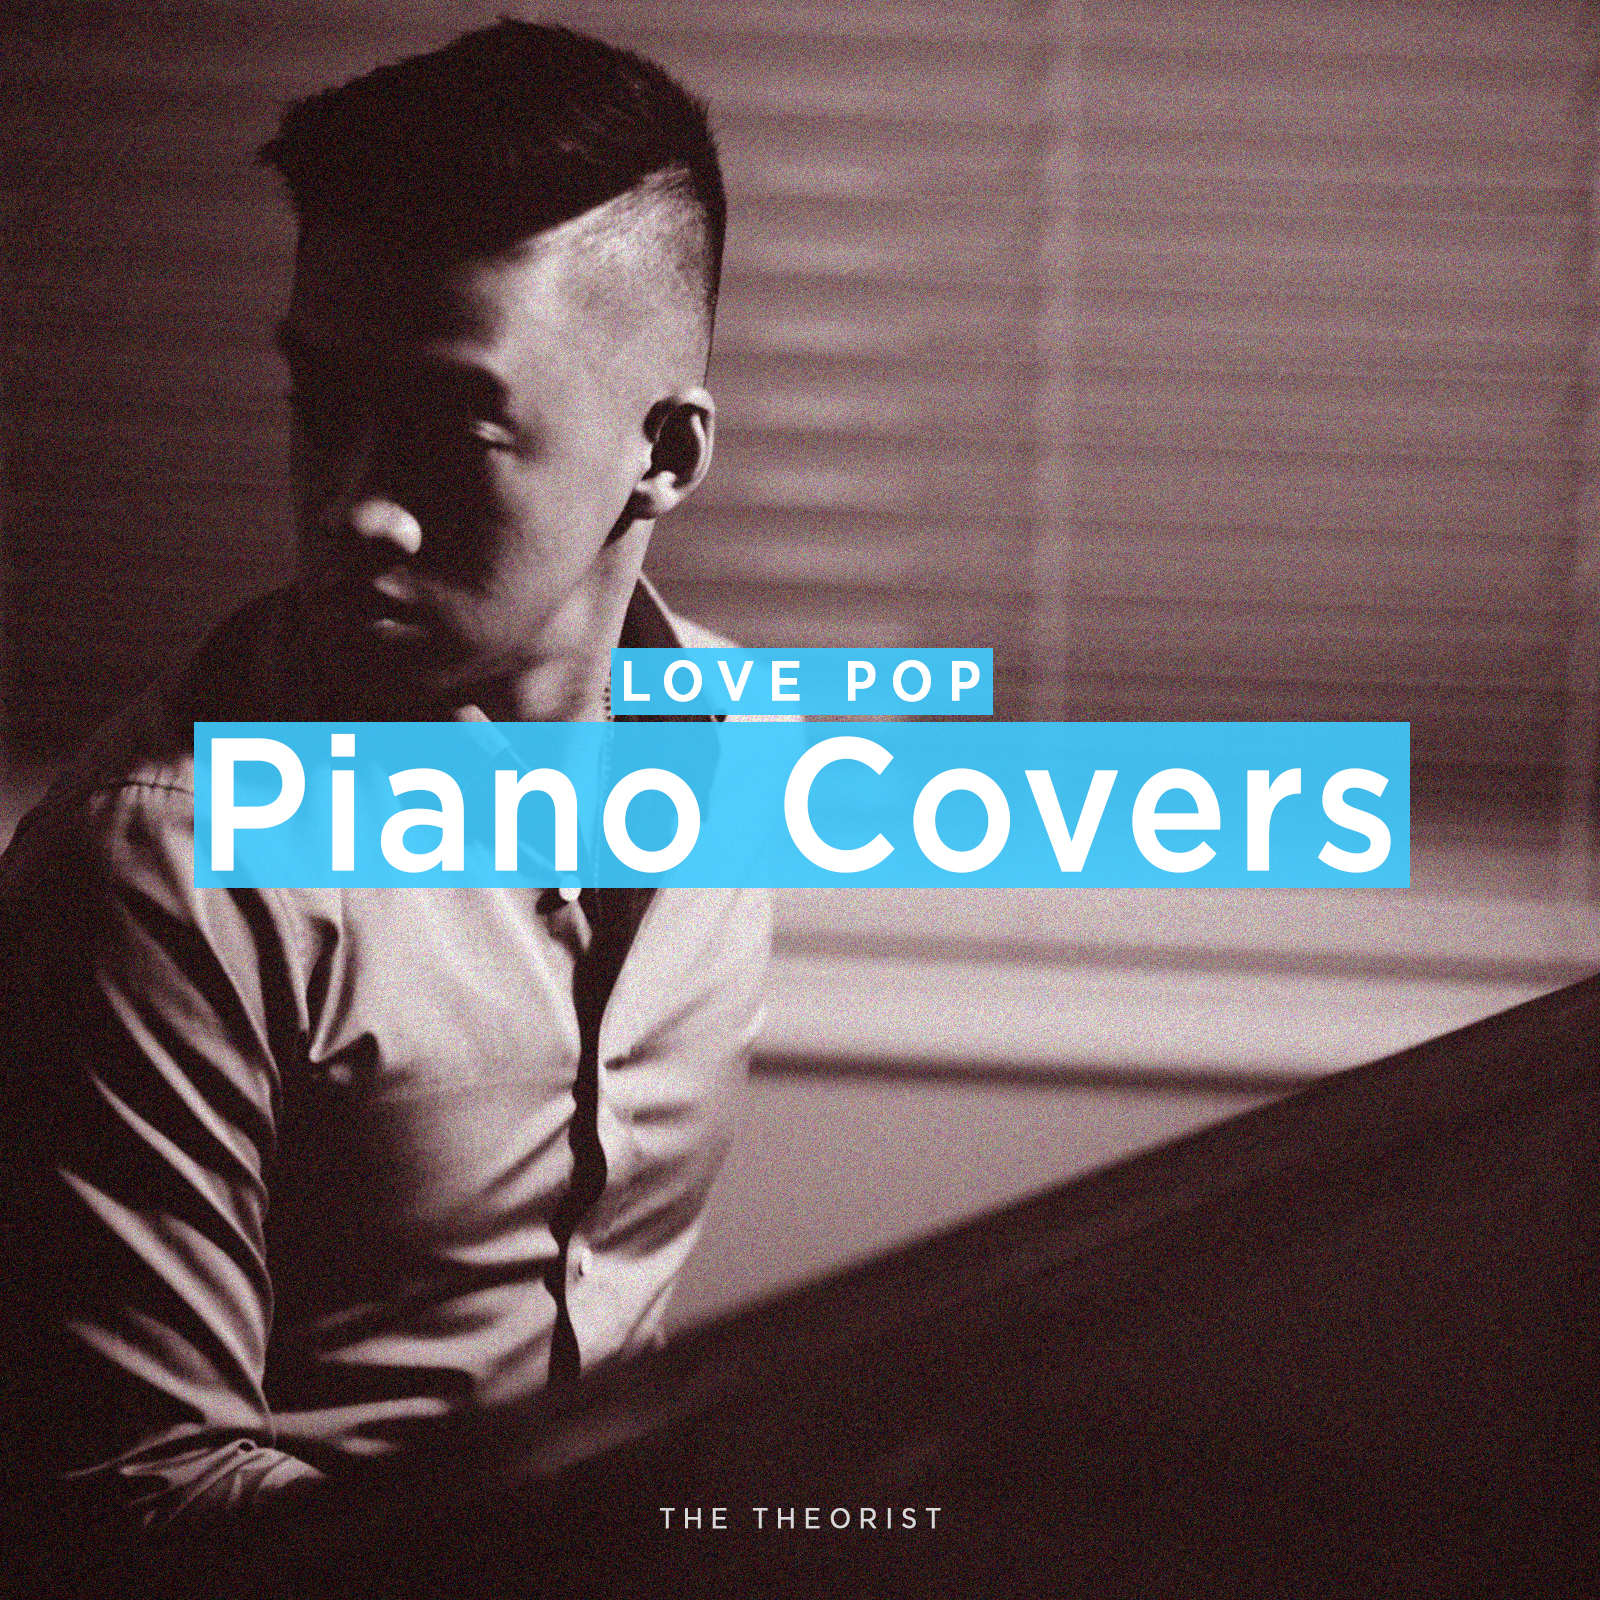 A cover series dedicated to lust & love. The collection includes arrangements of Drake, John Legend, Frank Ocean, and many more.